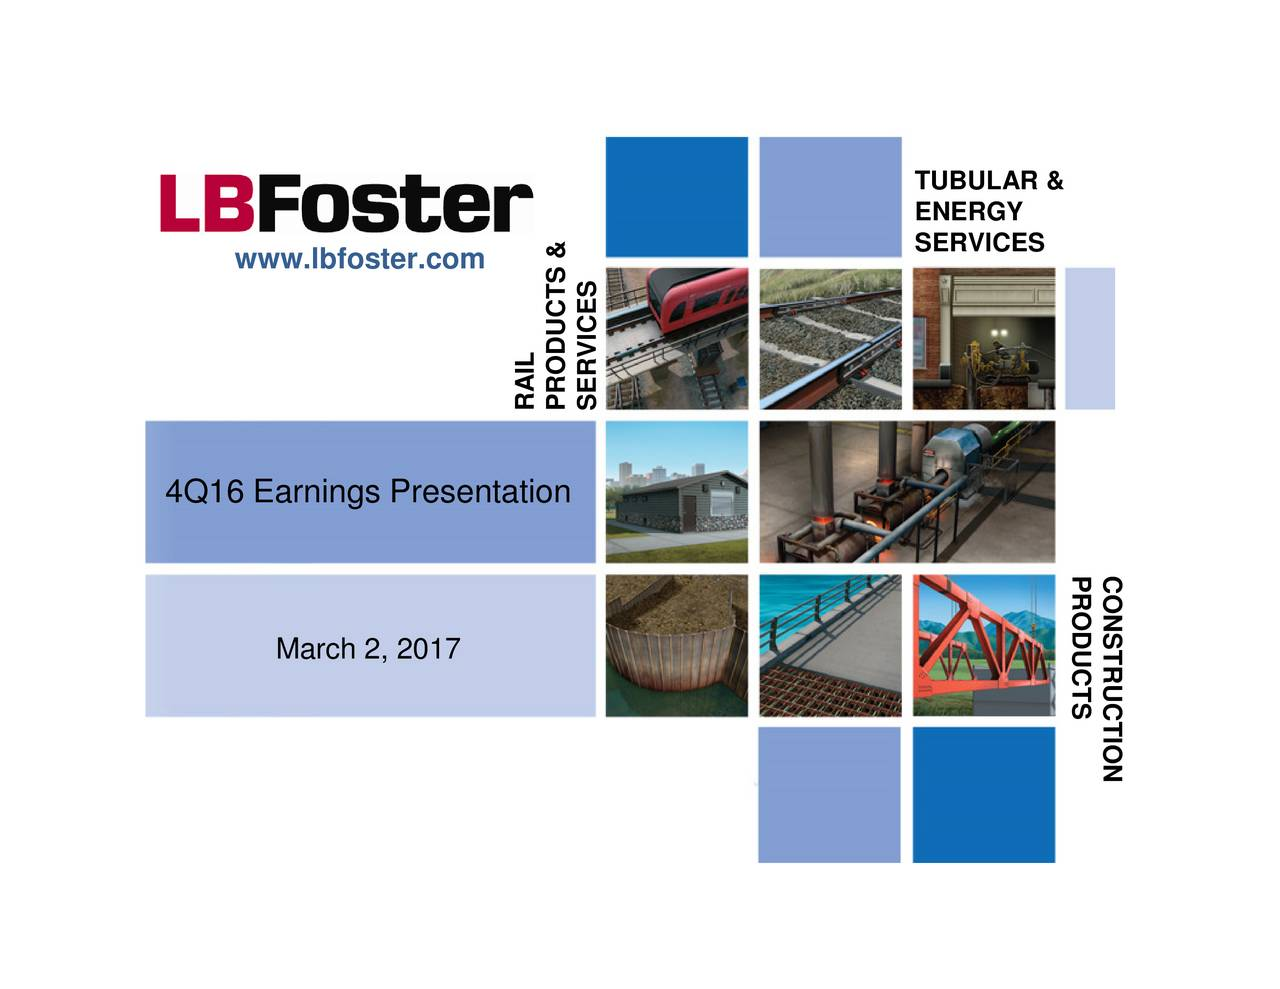 PRODUCTS TUBULARYICES SERVICES PRODUCTS & RAIL March 2, 2017 www.lbfoster.com 4Q16 Earnings Presentation